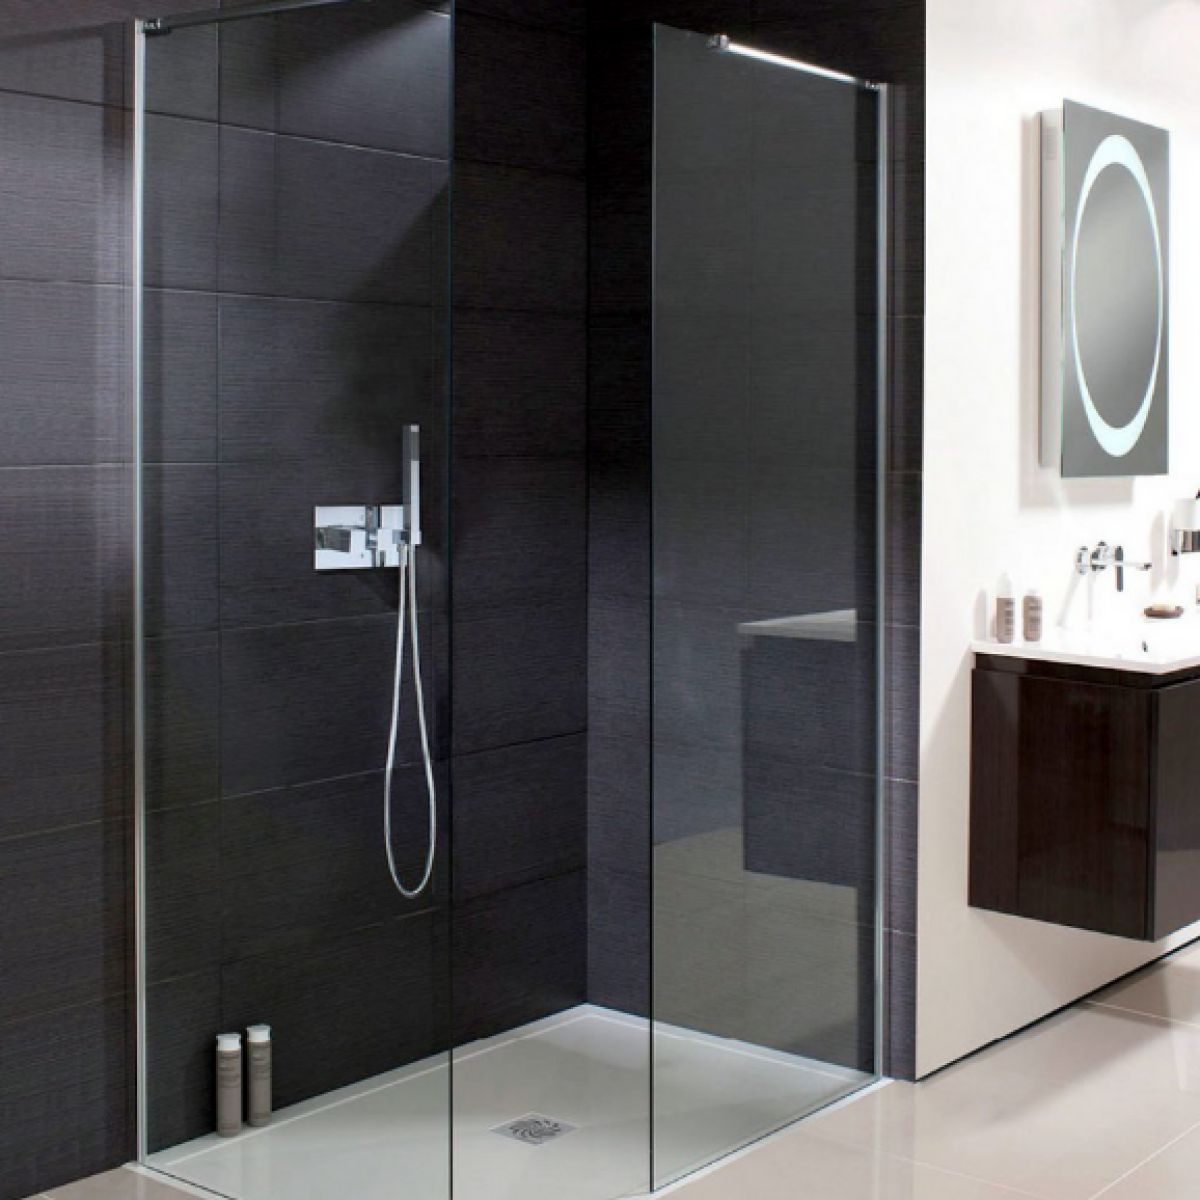 Simpsons design semi frameless walk in shower panel uk for Walk in shower plans and specs